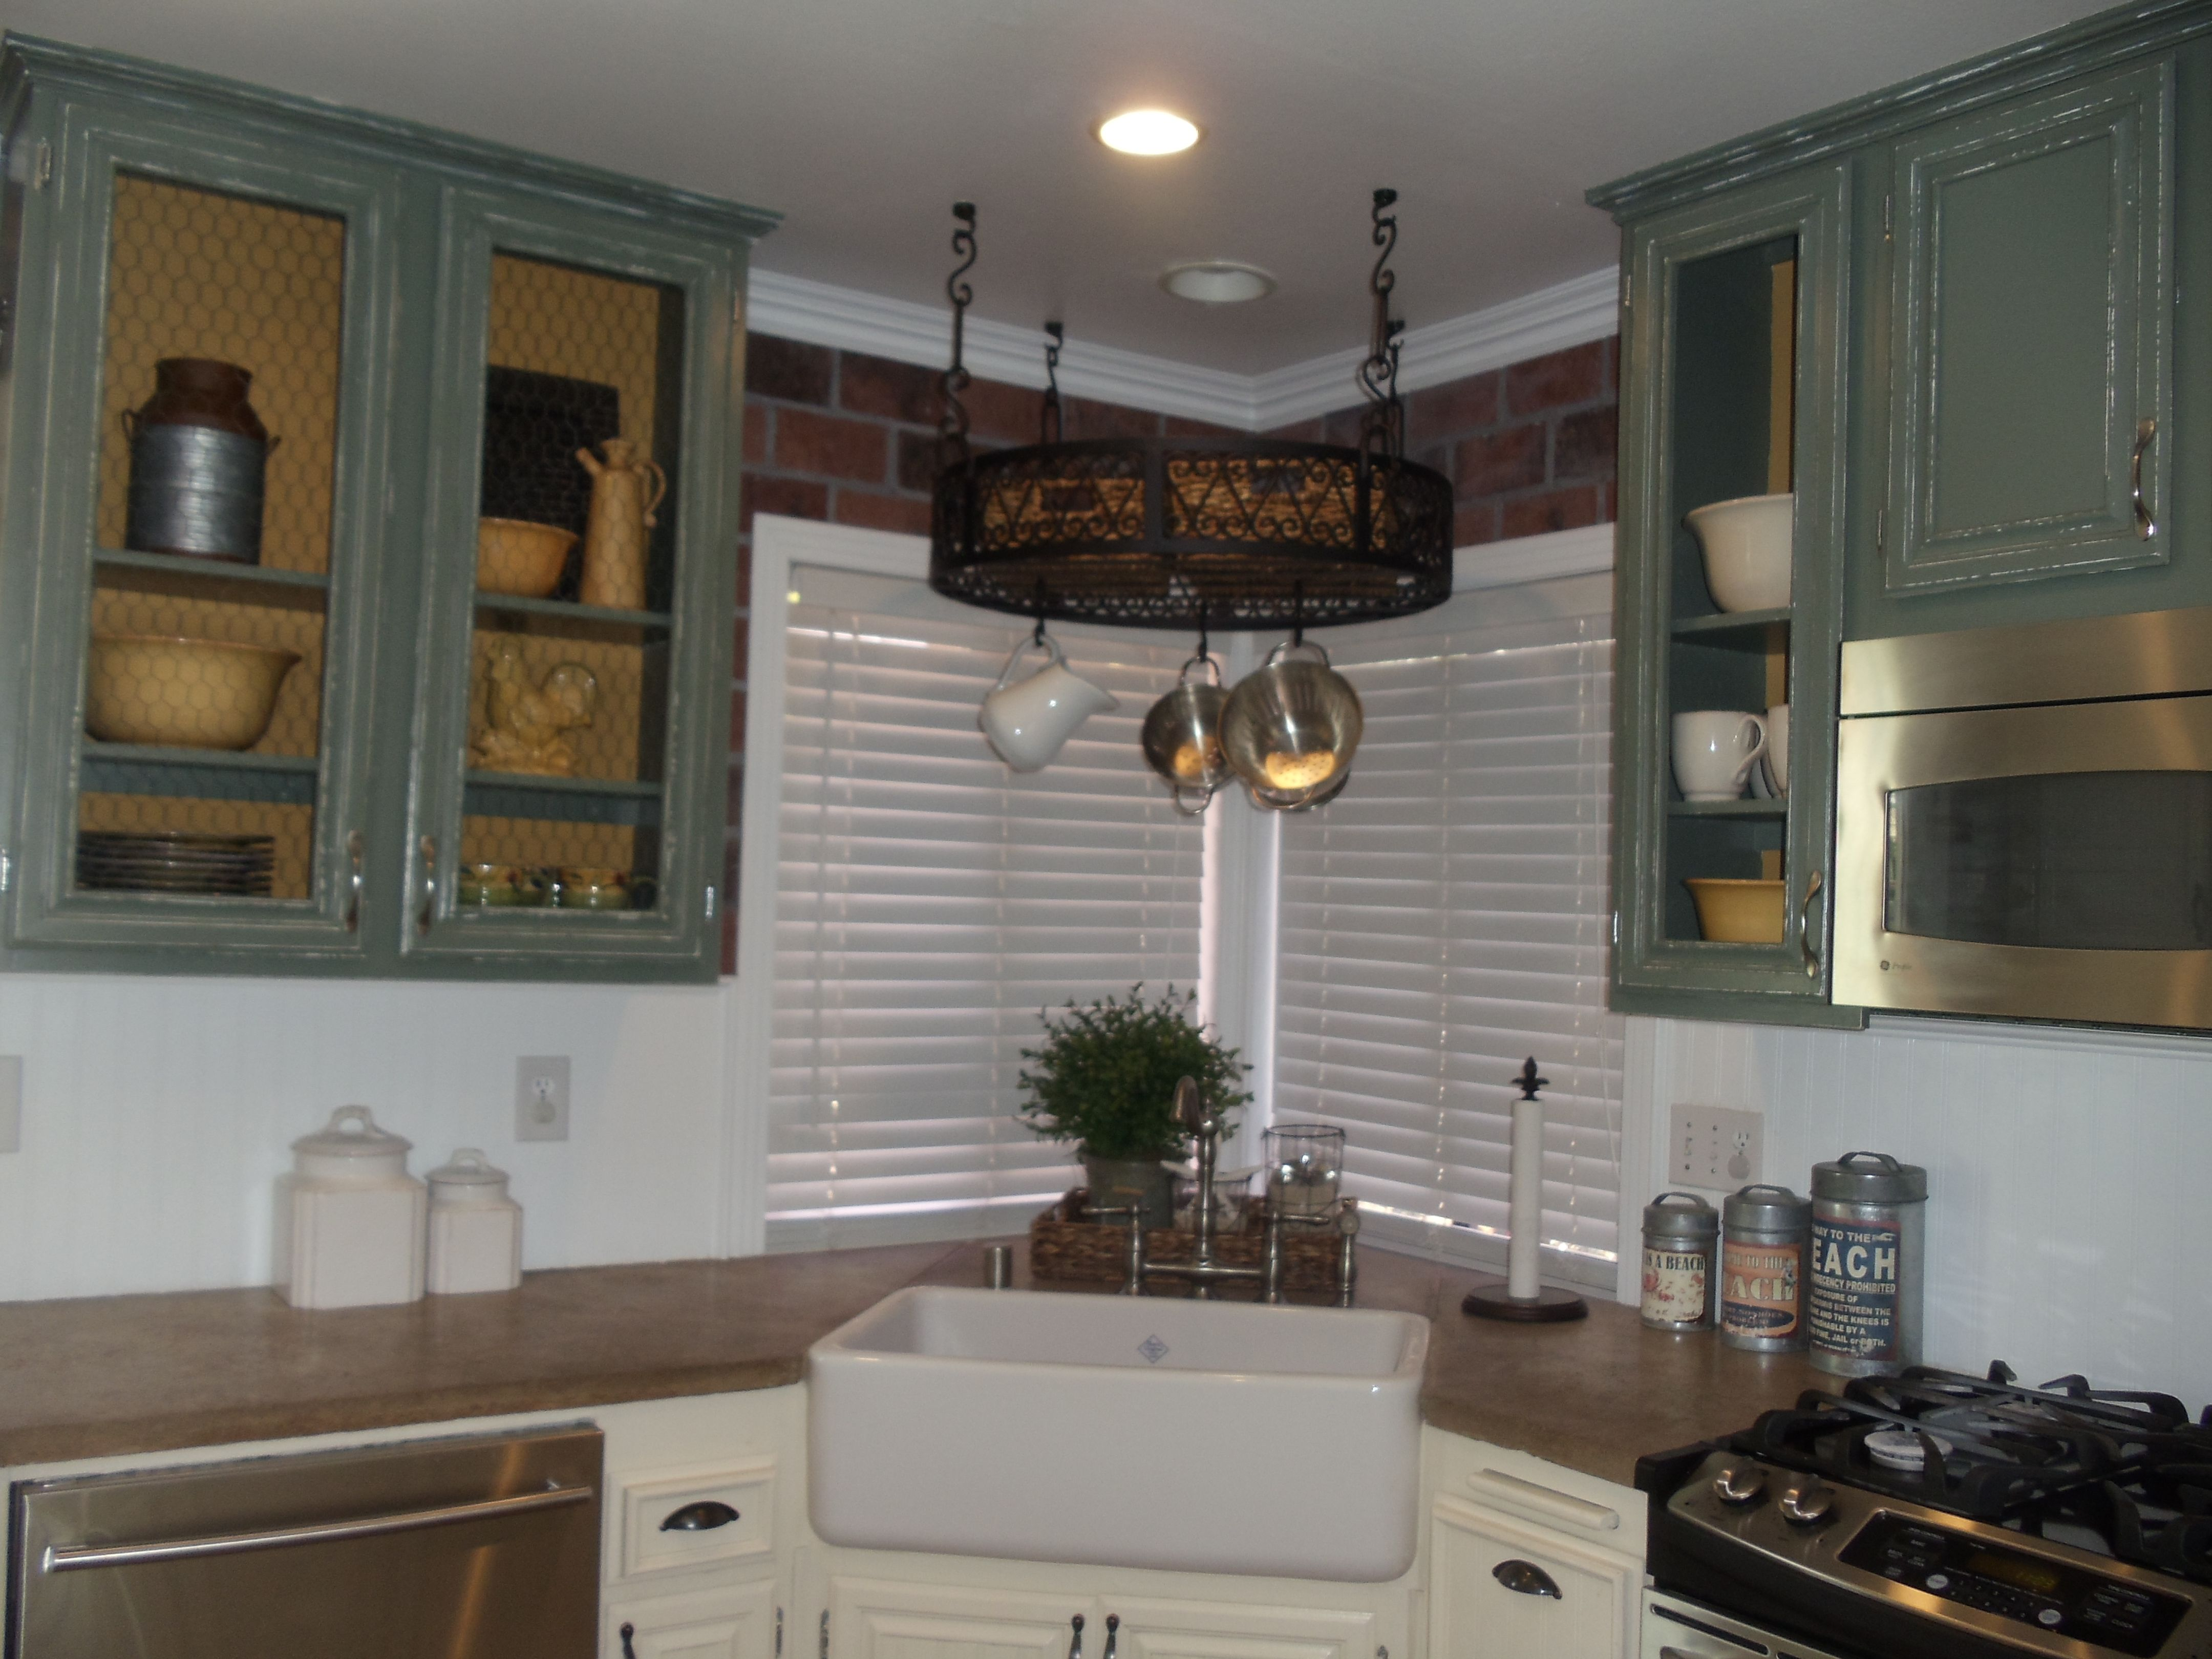 Country Kitchen....Original cabinetry painted and distressed ...